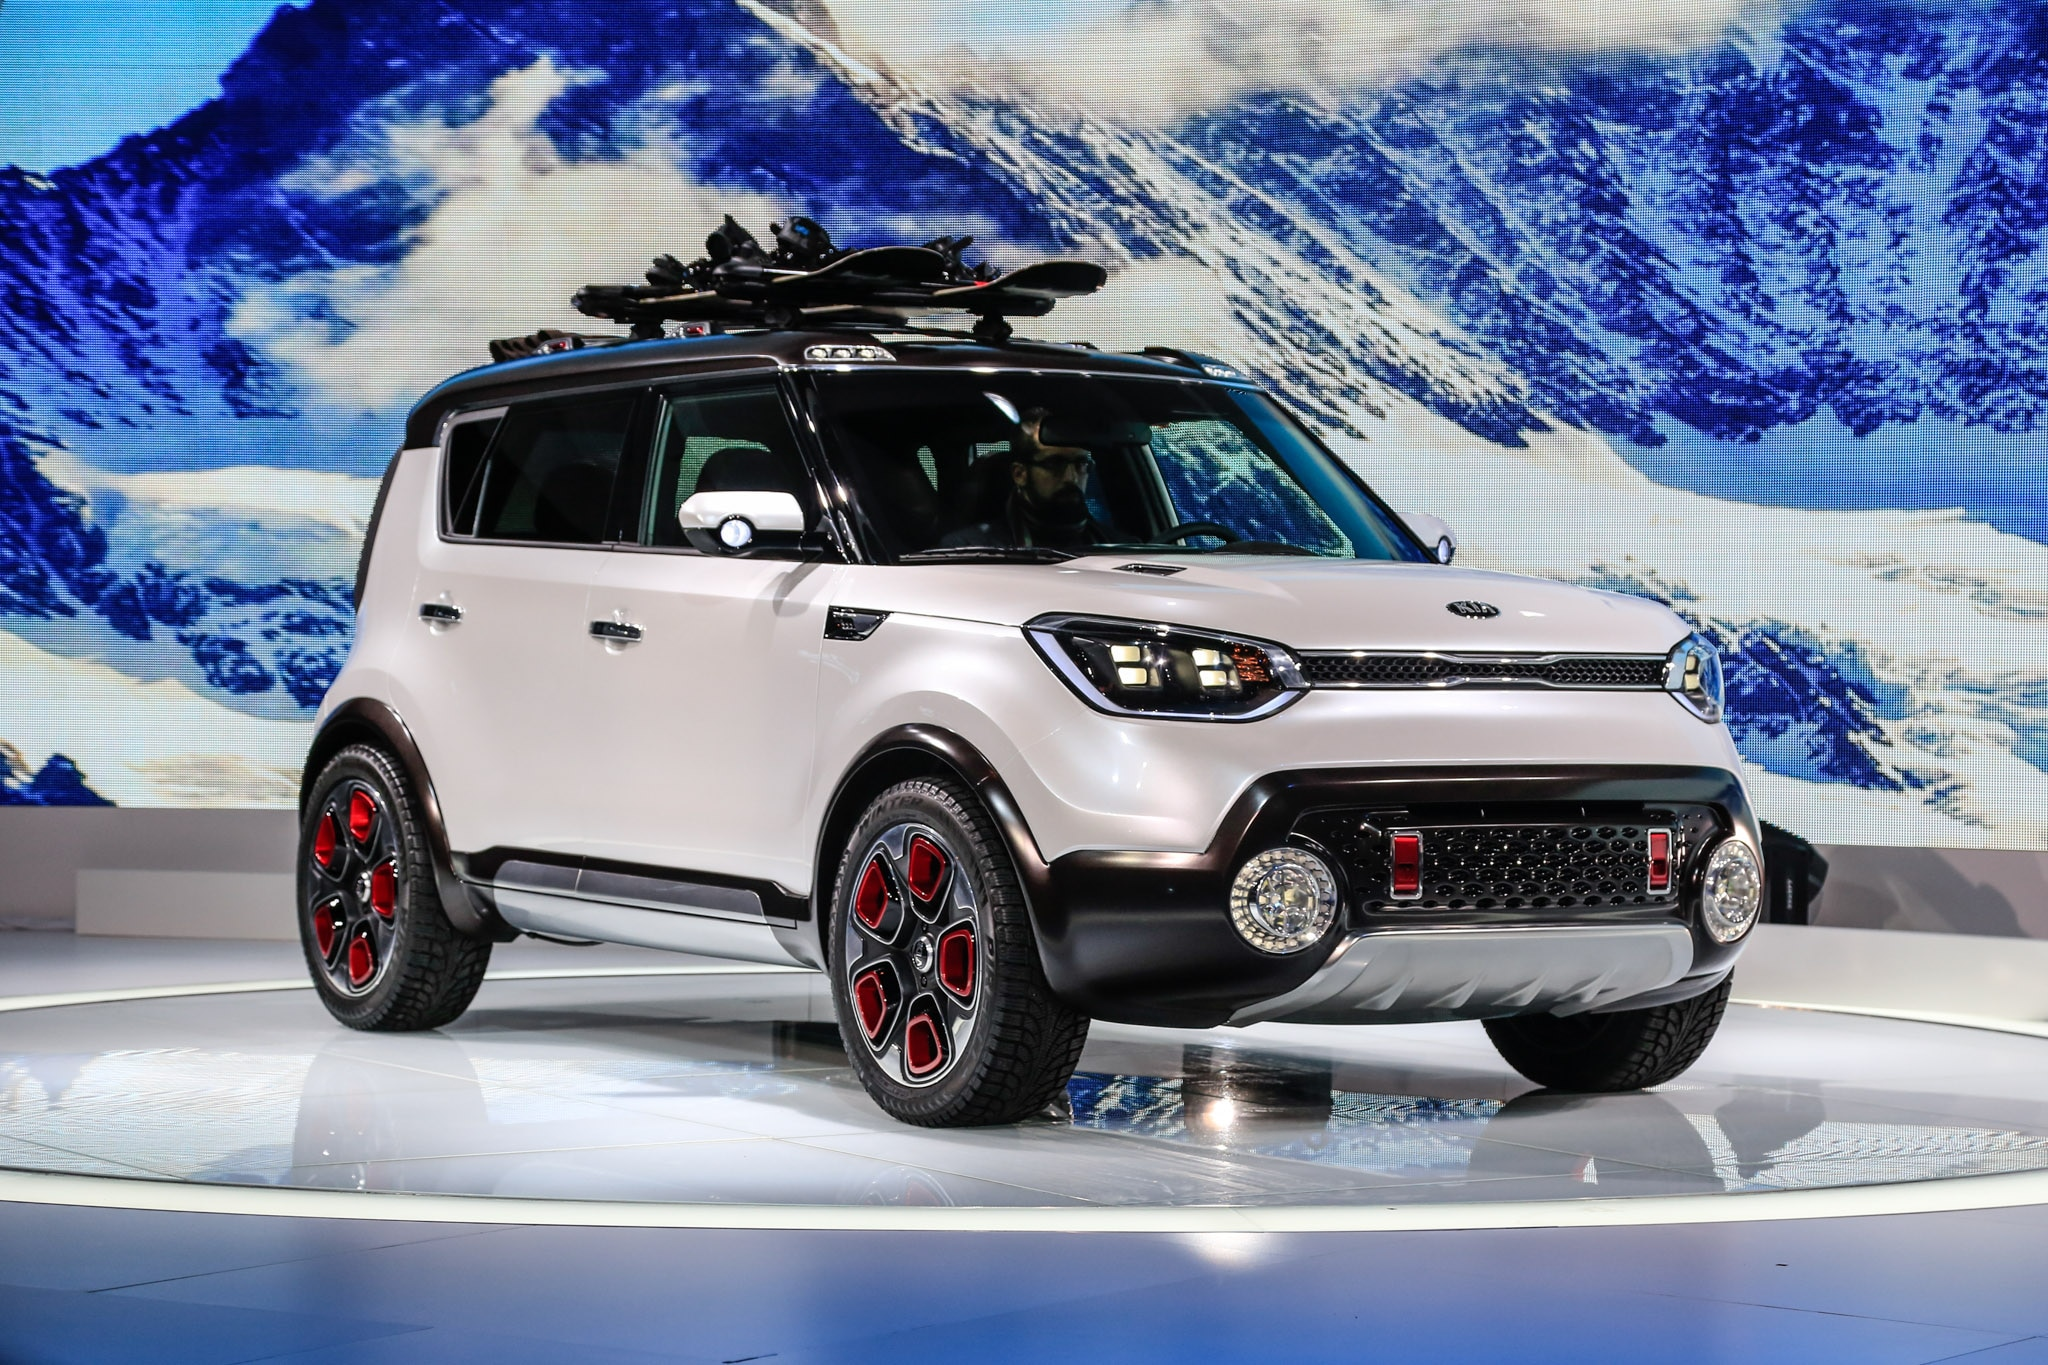 kia trail 39 ster concept brings e awd rugged looks to chicago. Black Bedroom Furniture Sets. Home Design Ideas